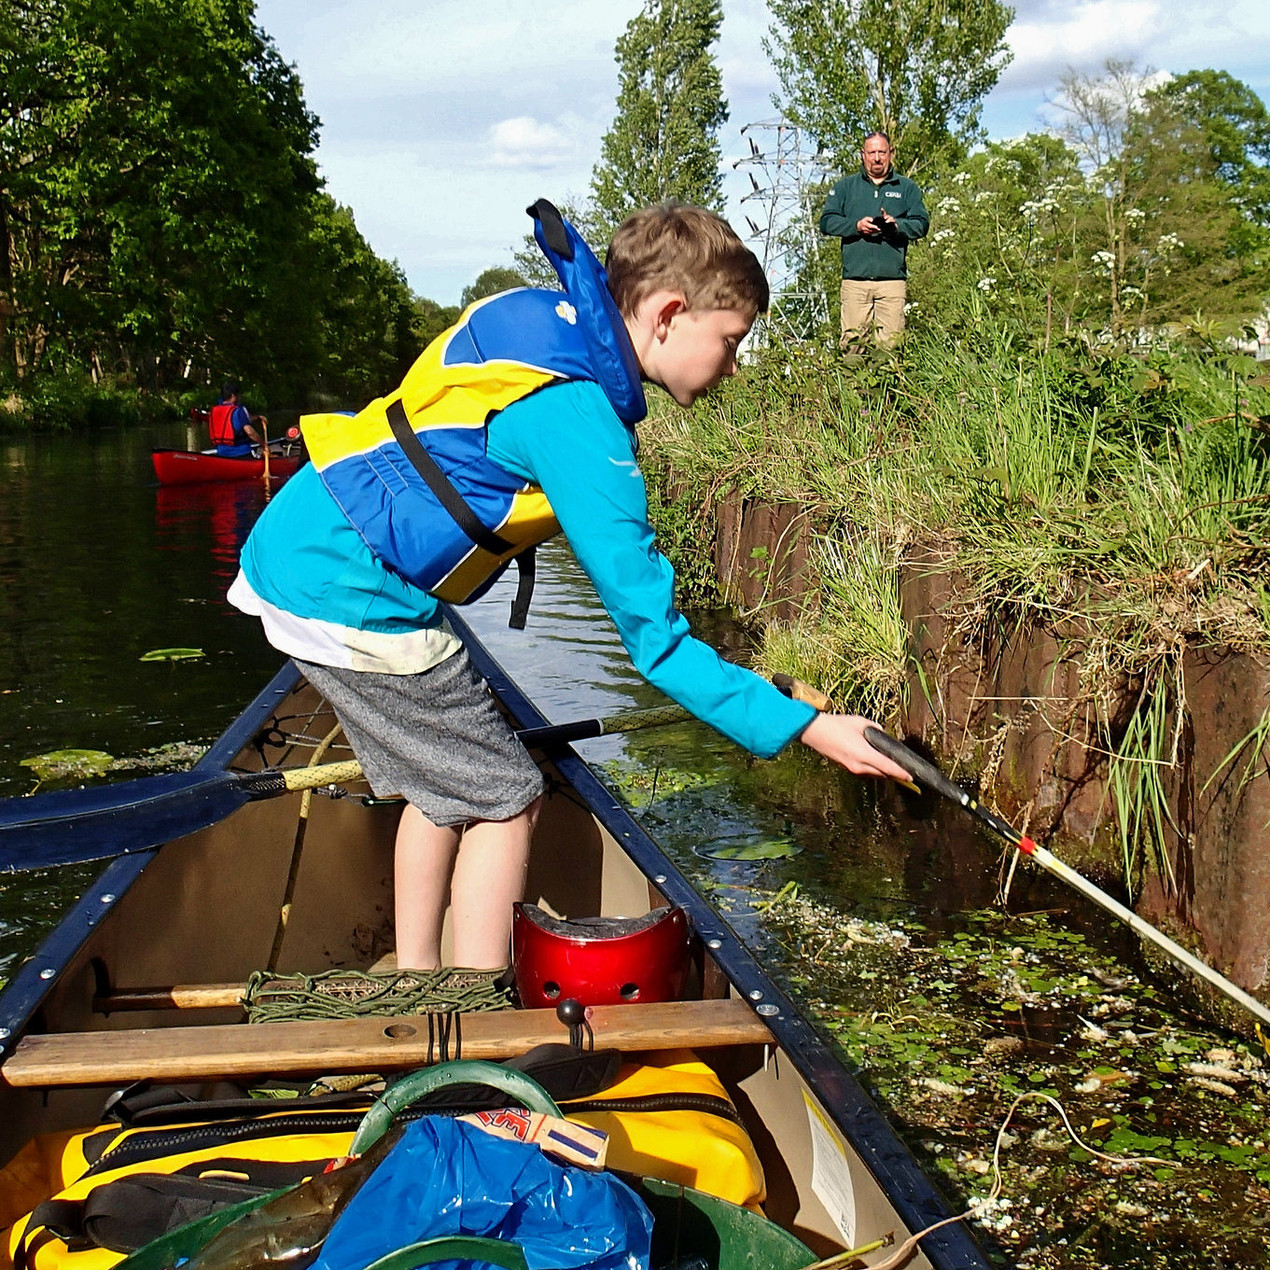 Young Shaun litter picking by canoe